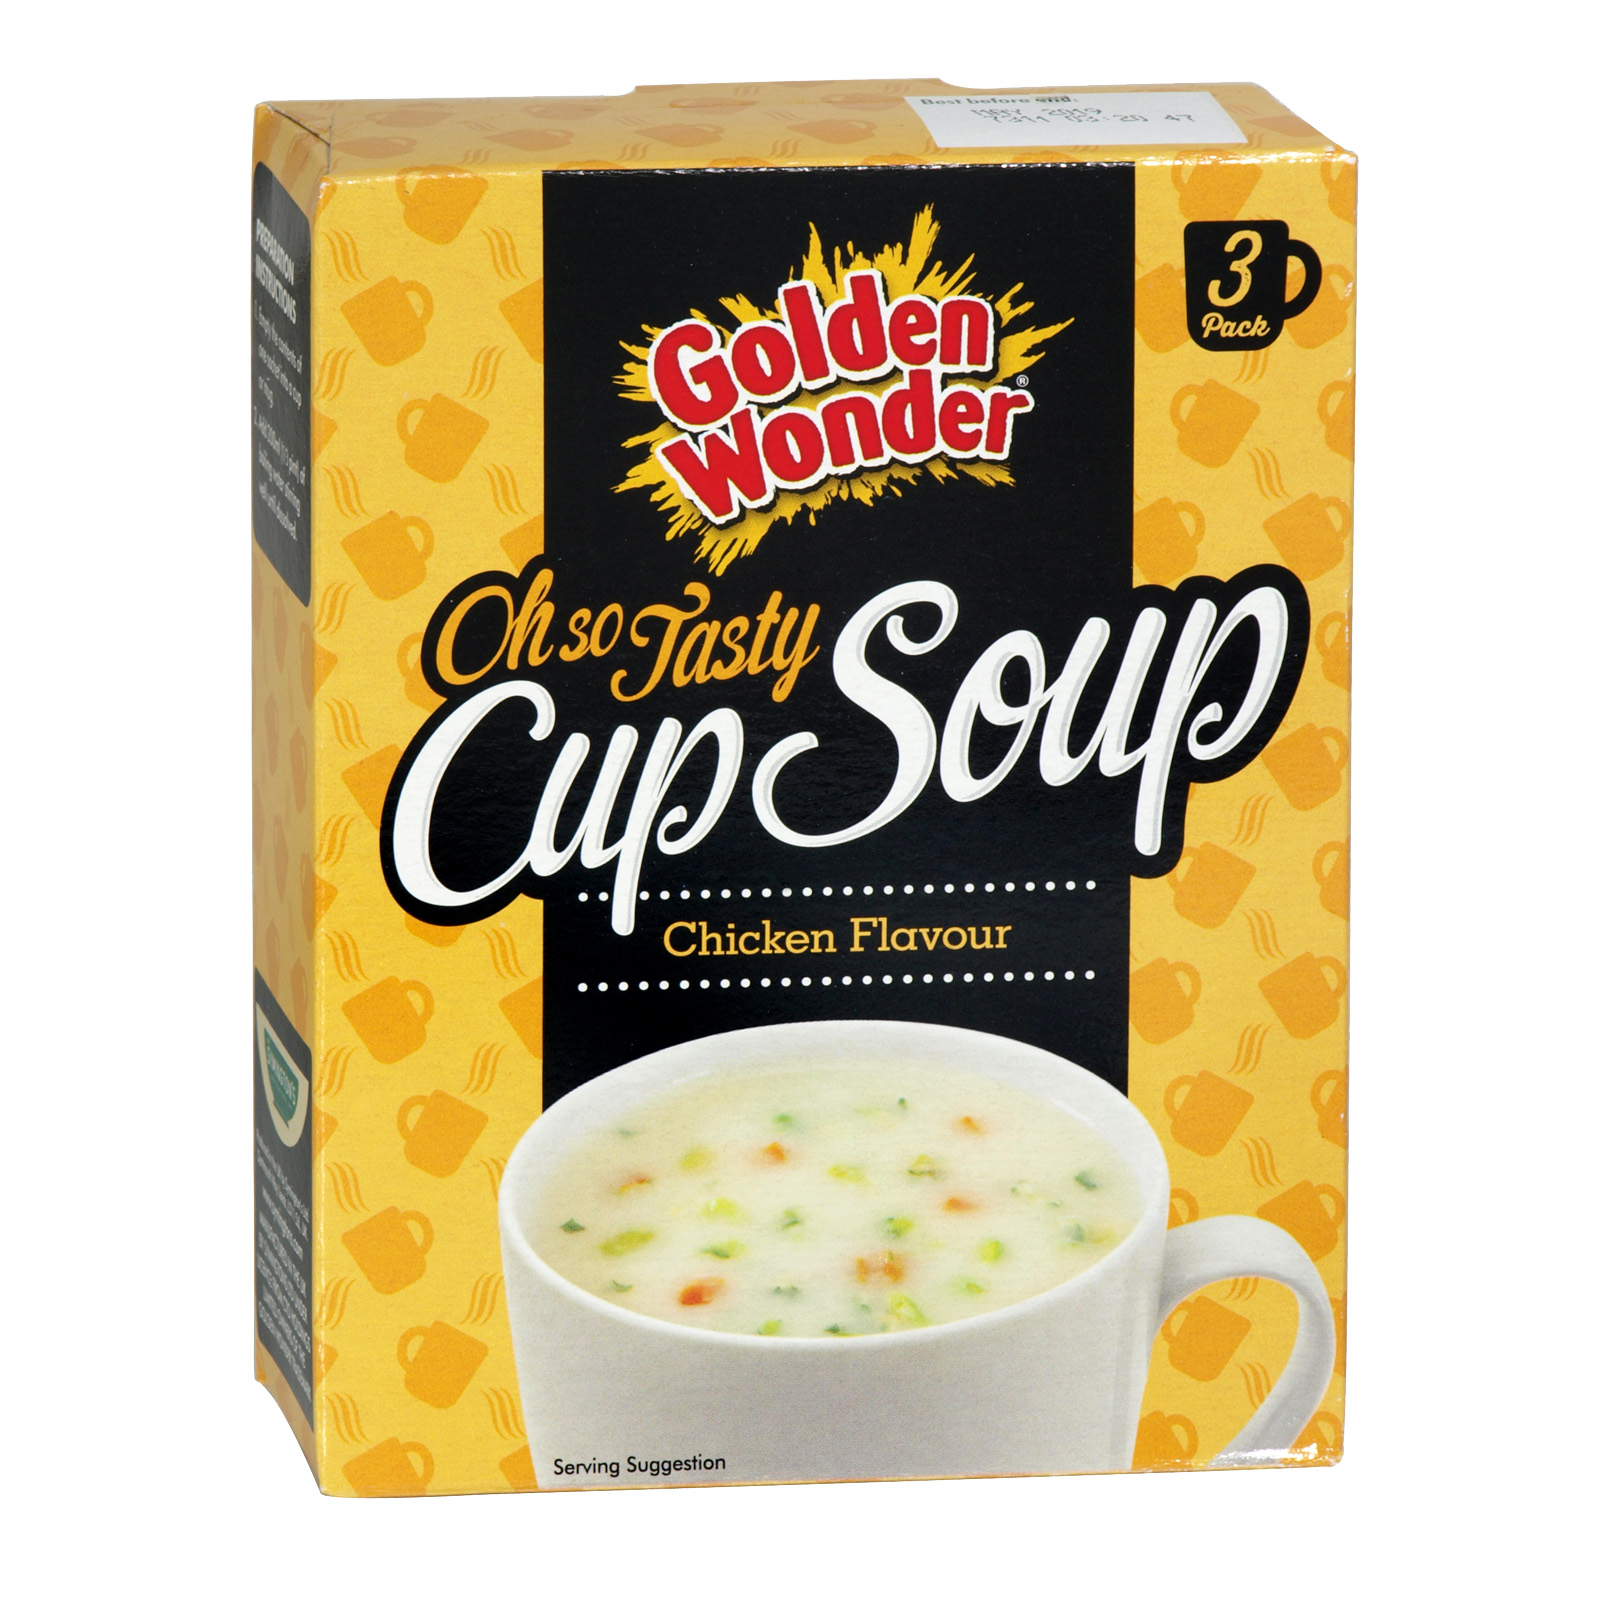 GOLDEN WONDER CUP SOUP CHICKEN 3 PK X12